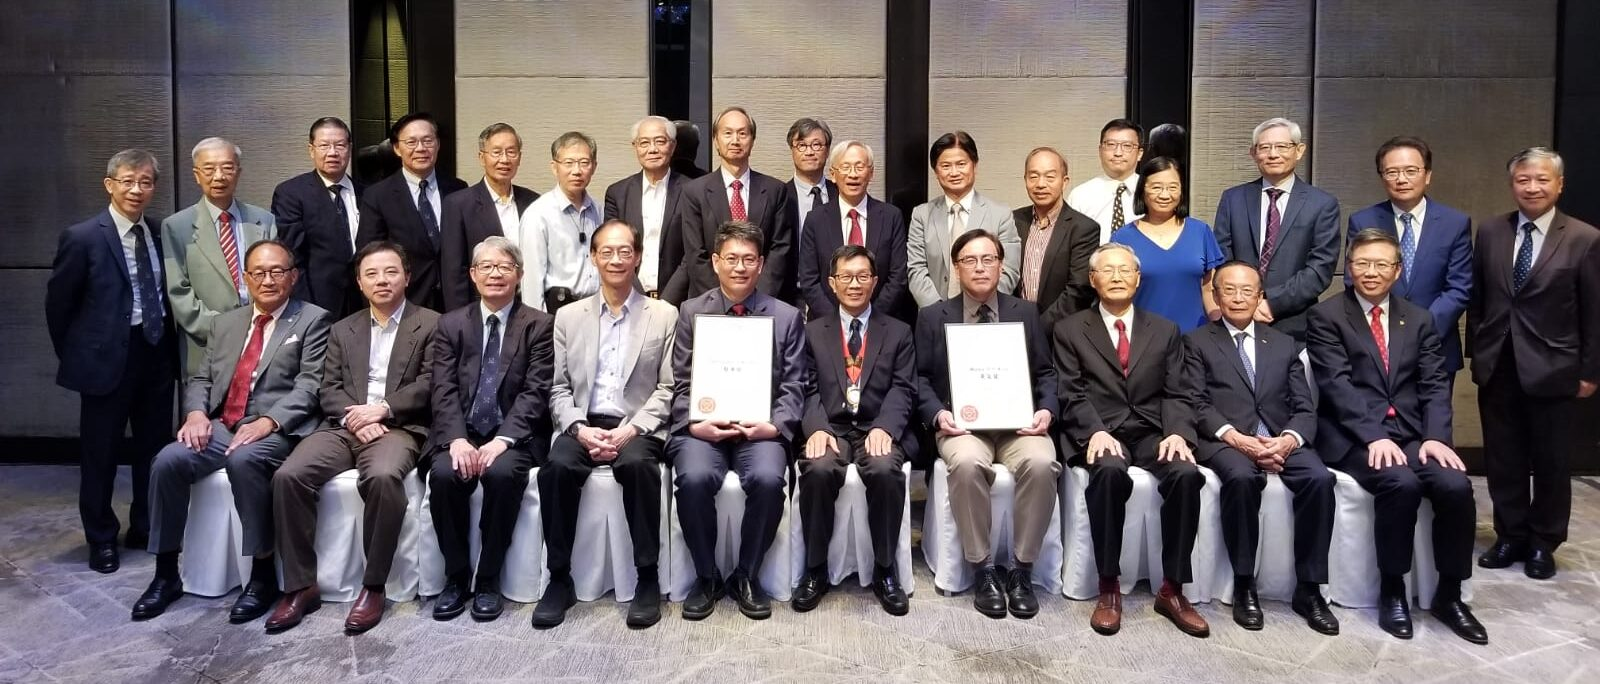 Group-Photo-after-the-New-Fellow-2019-Induction-Ceremony-e1594144647364